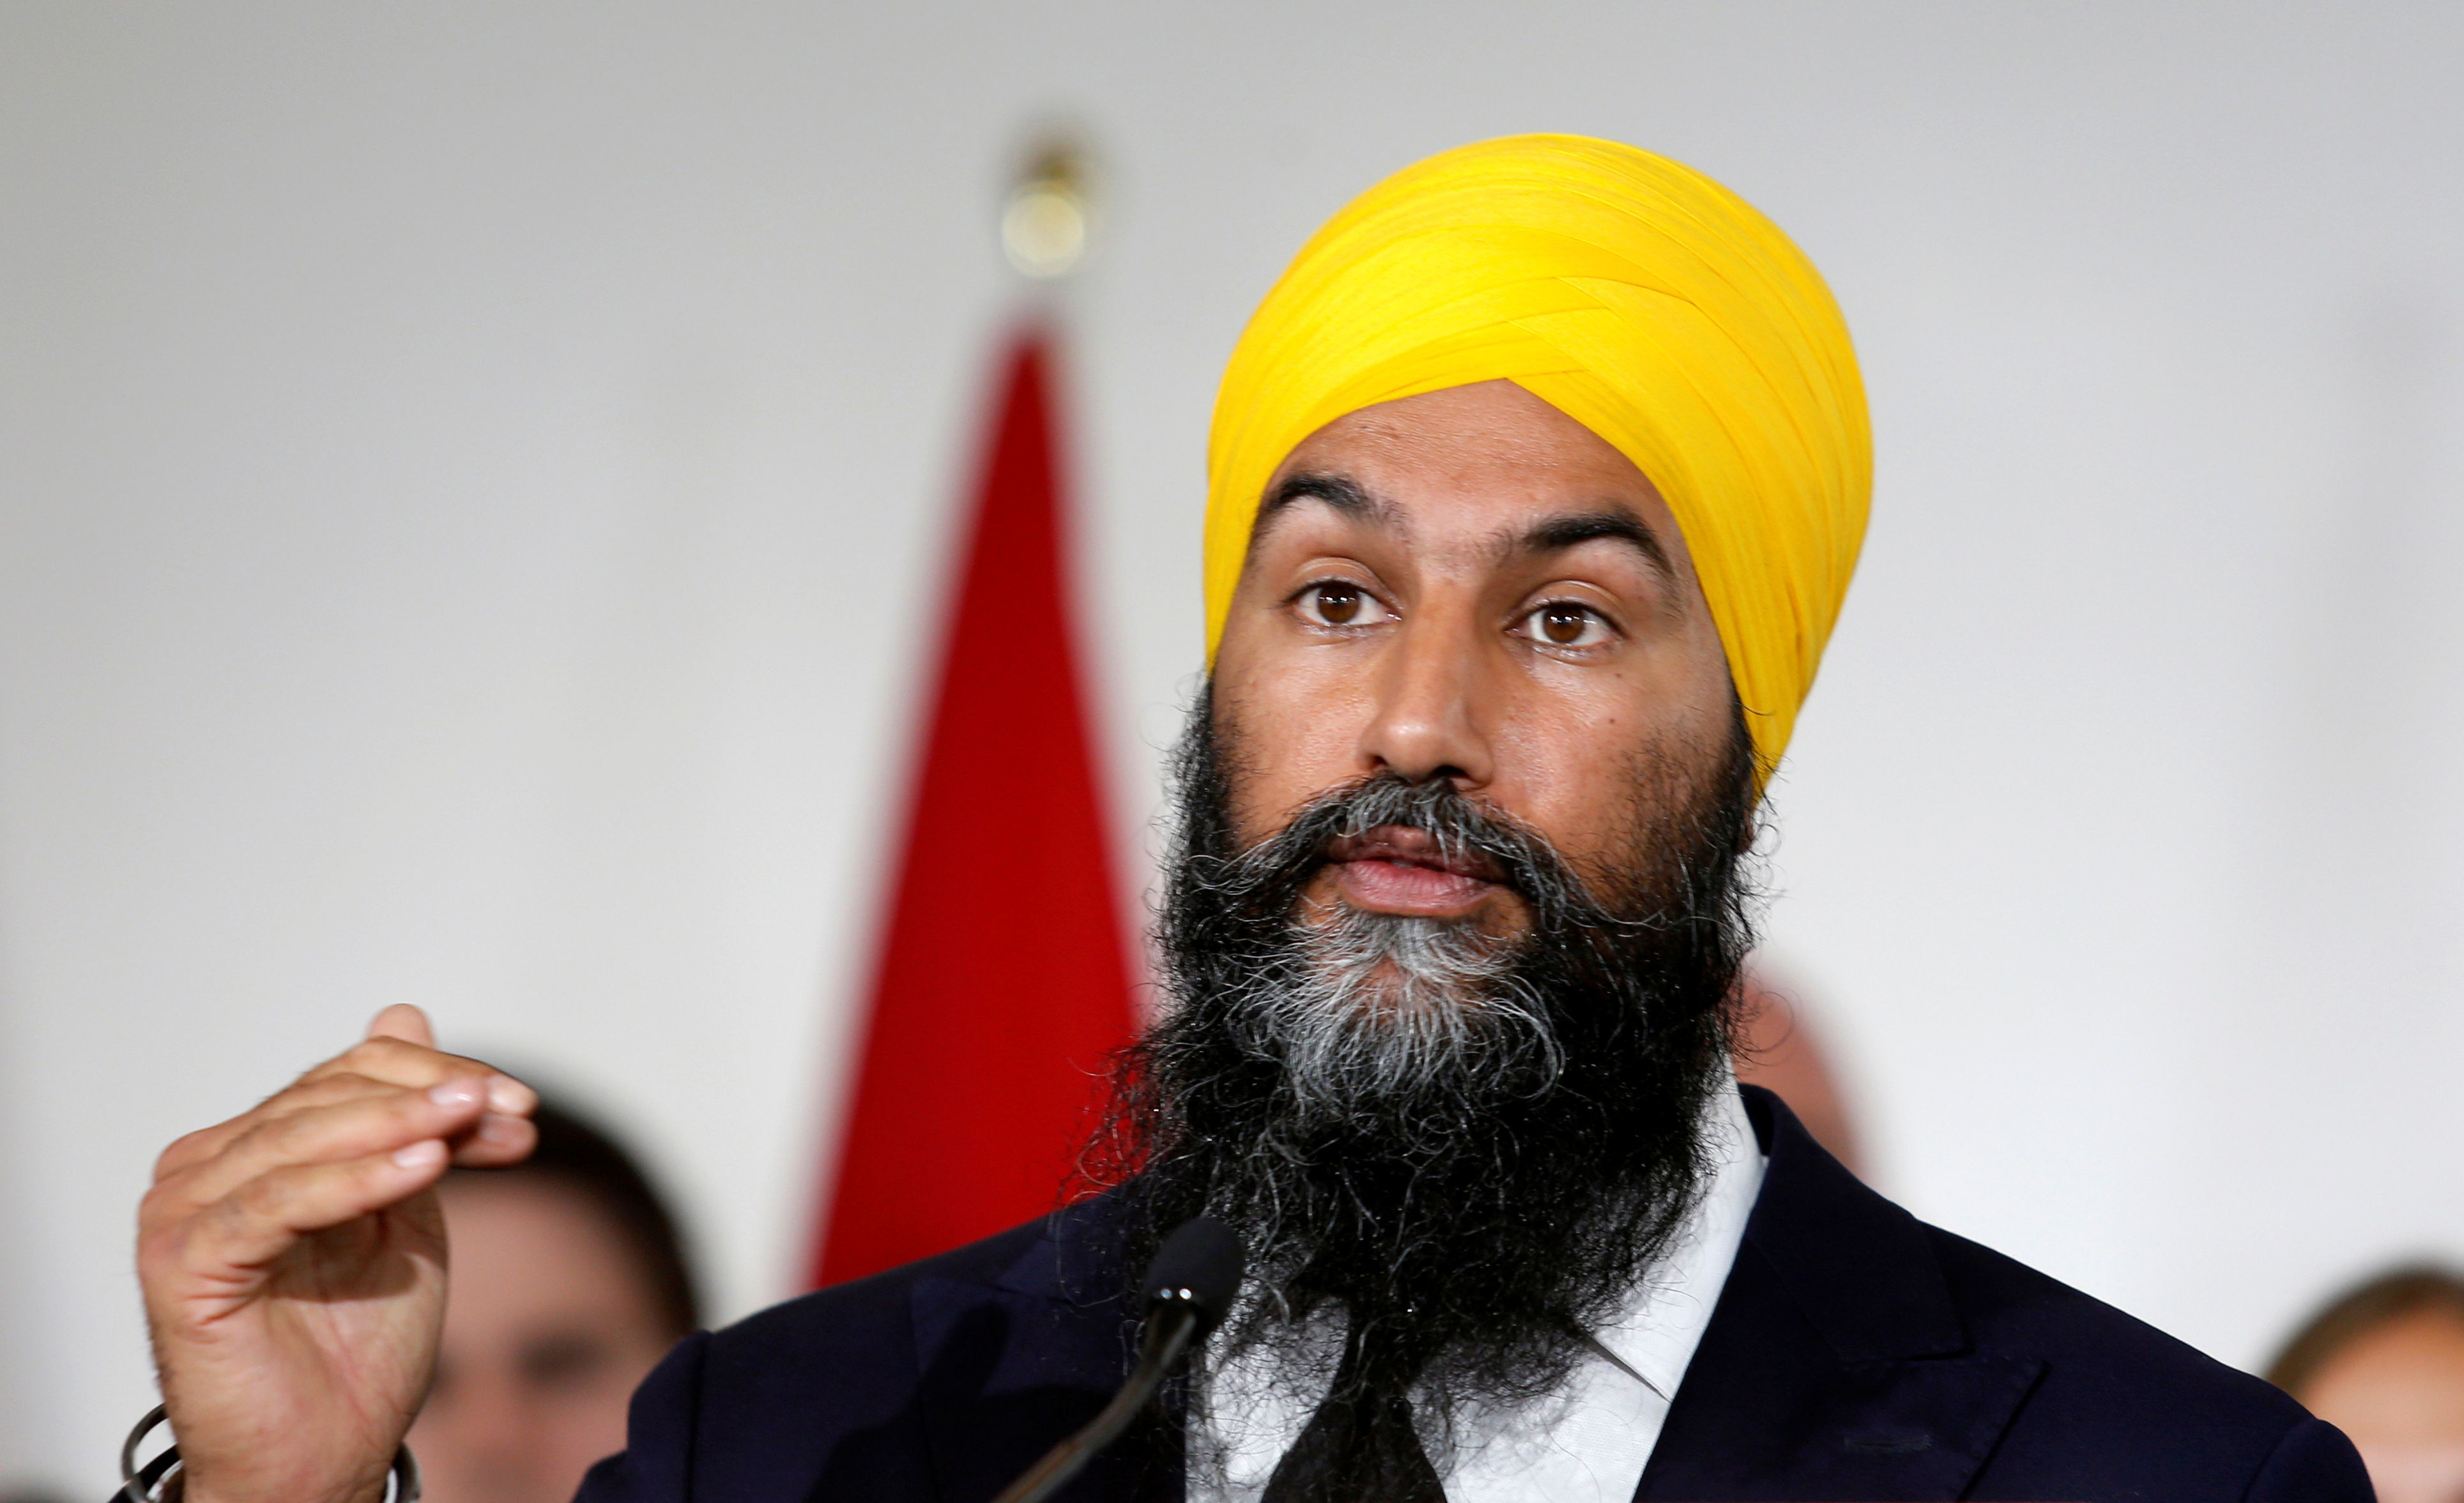 NDP Leader Jagmeet Singh promotes national pharmacare, extending public  health care in campaign launch - The Globe and Mail